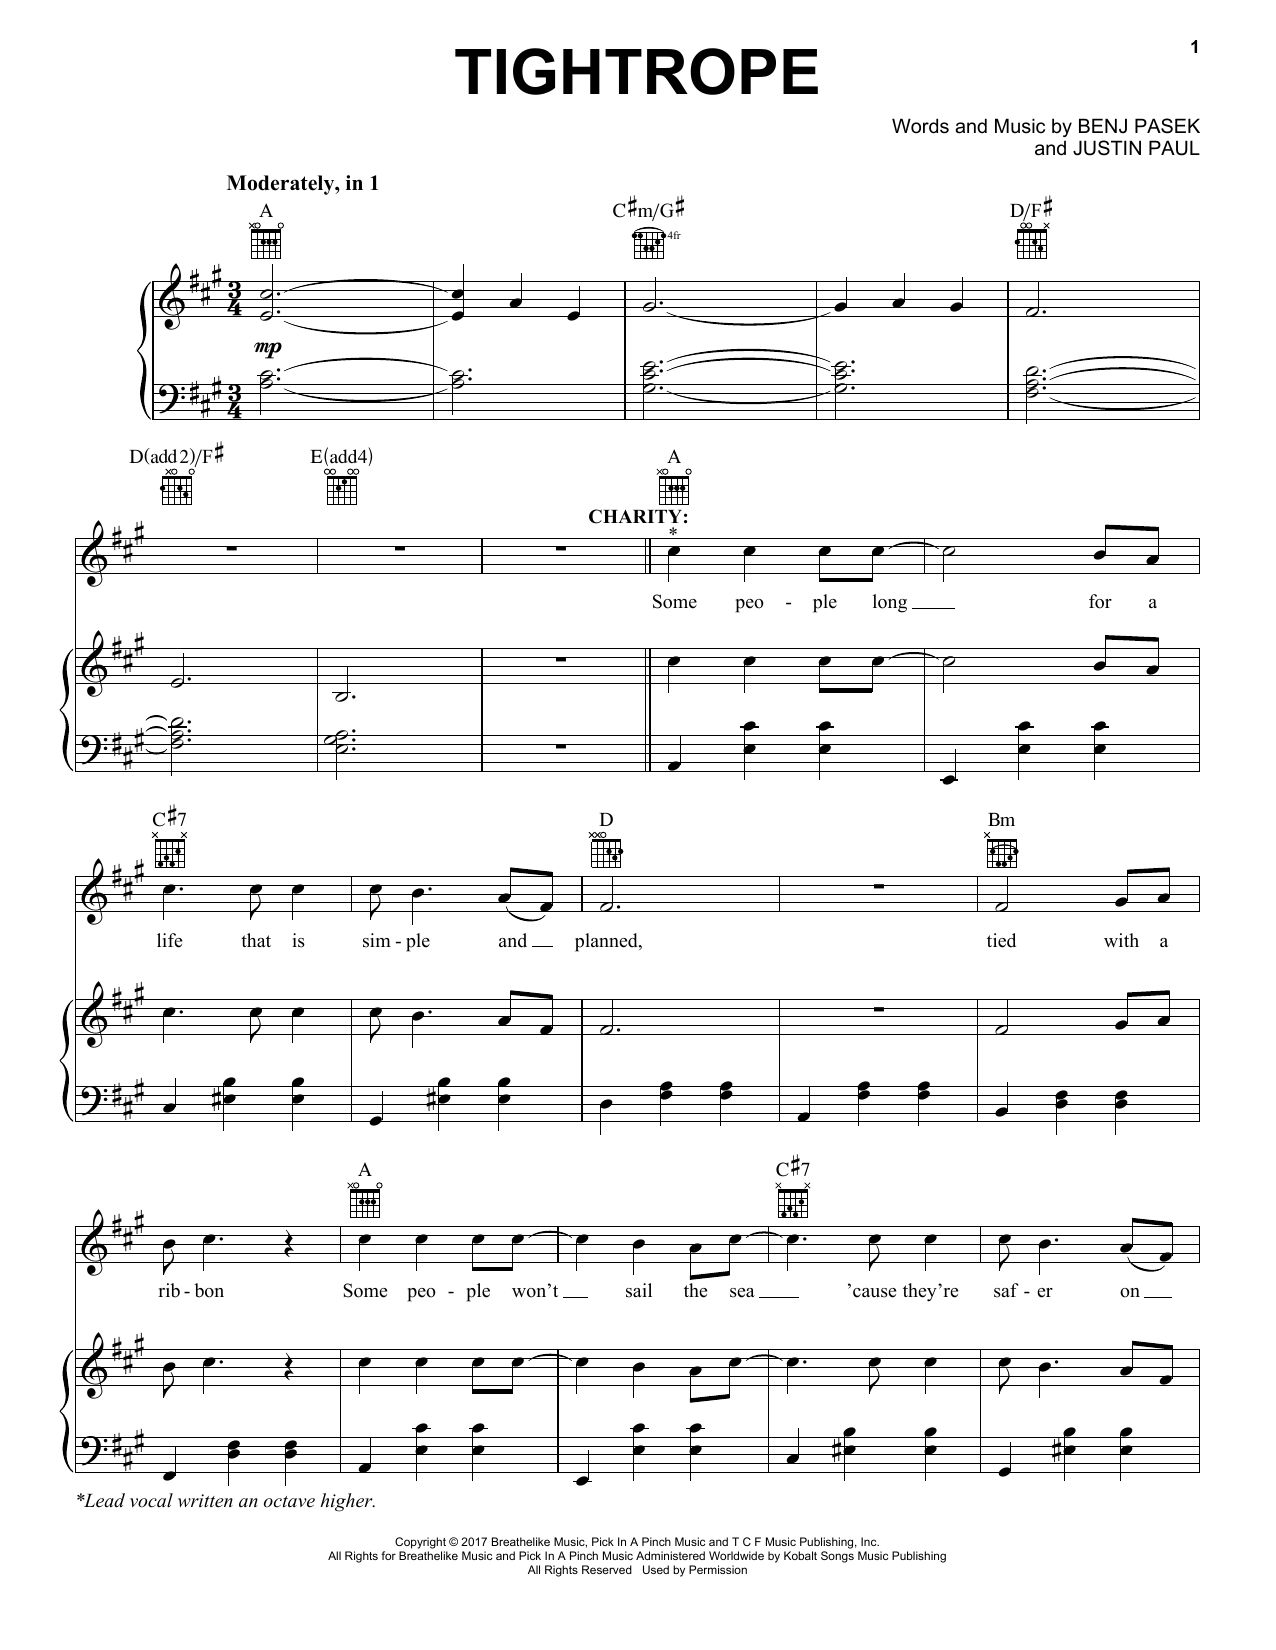 Pasek & Paul Tightrope (from The Greatest Showman) sheet music notes and chords. Download Printable PDF.